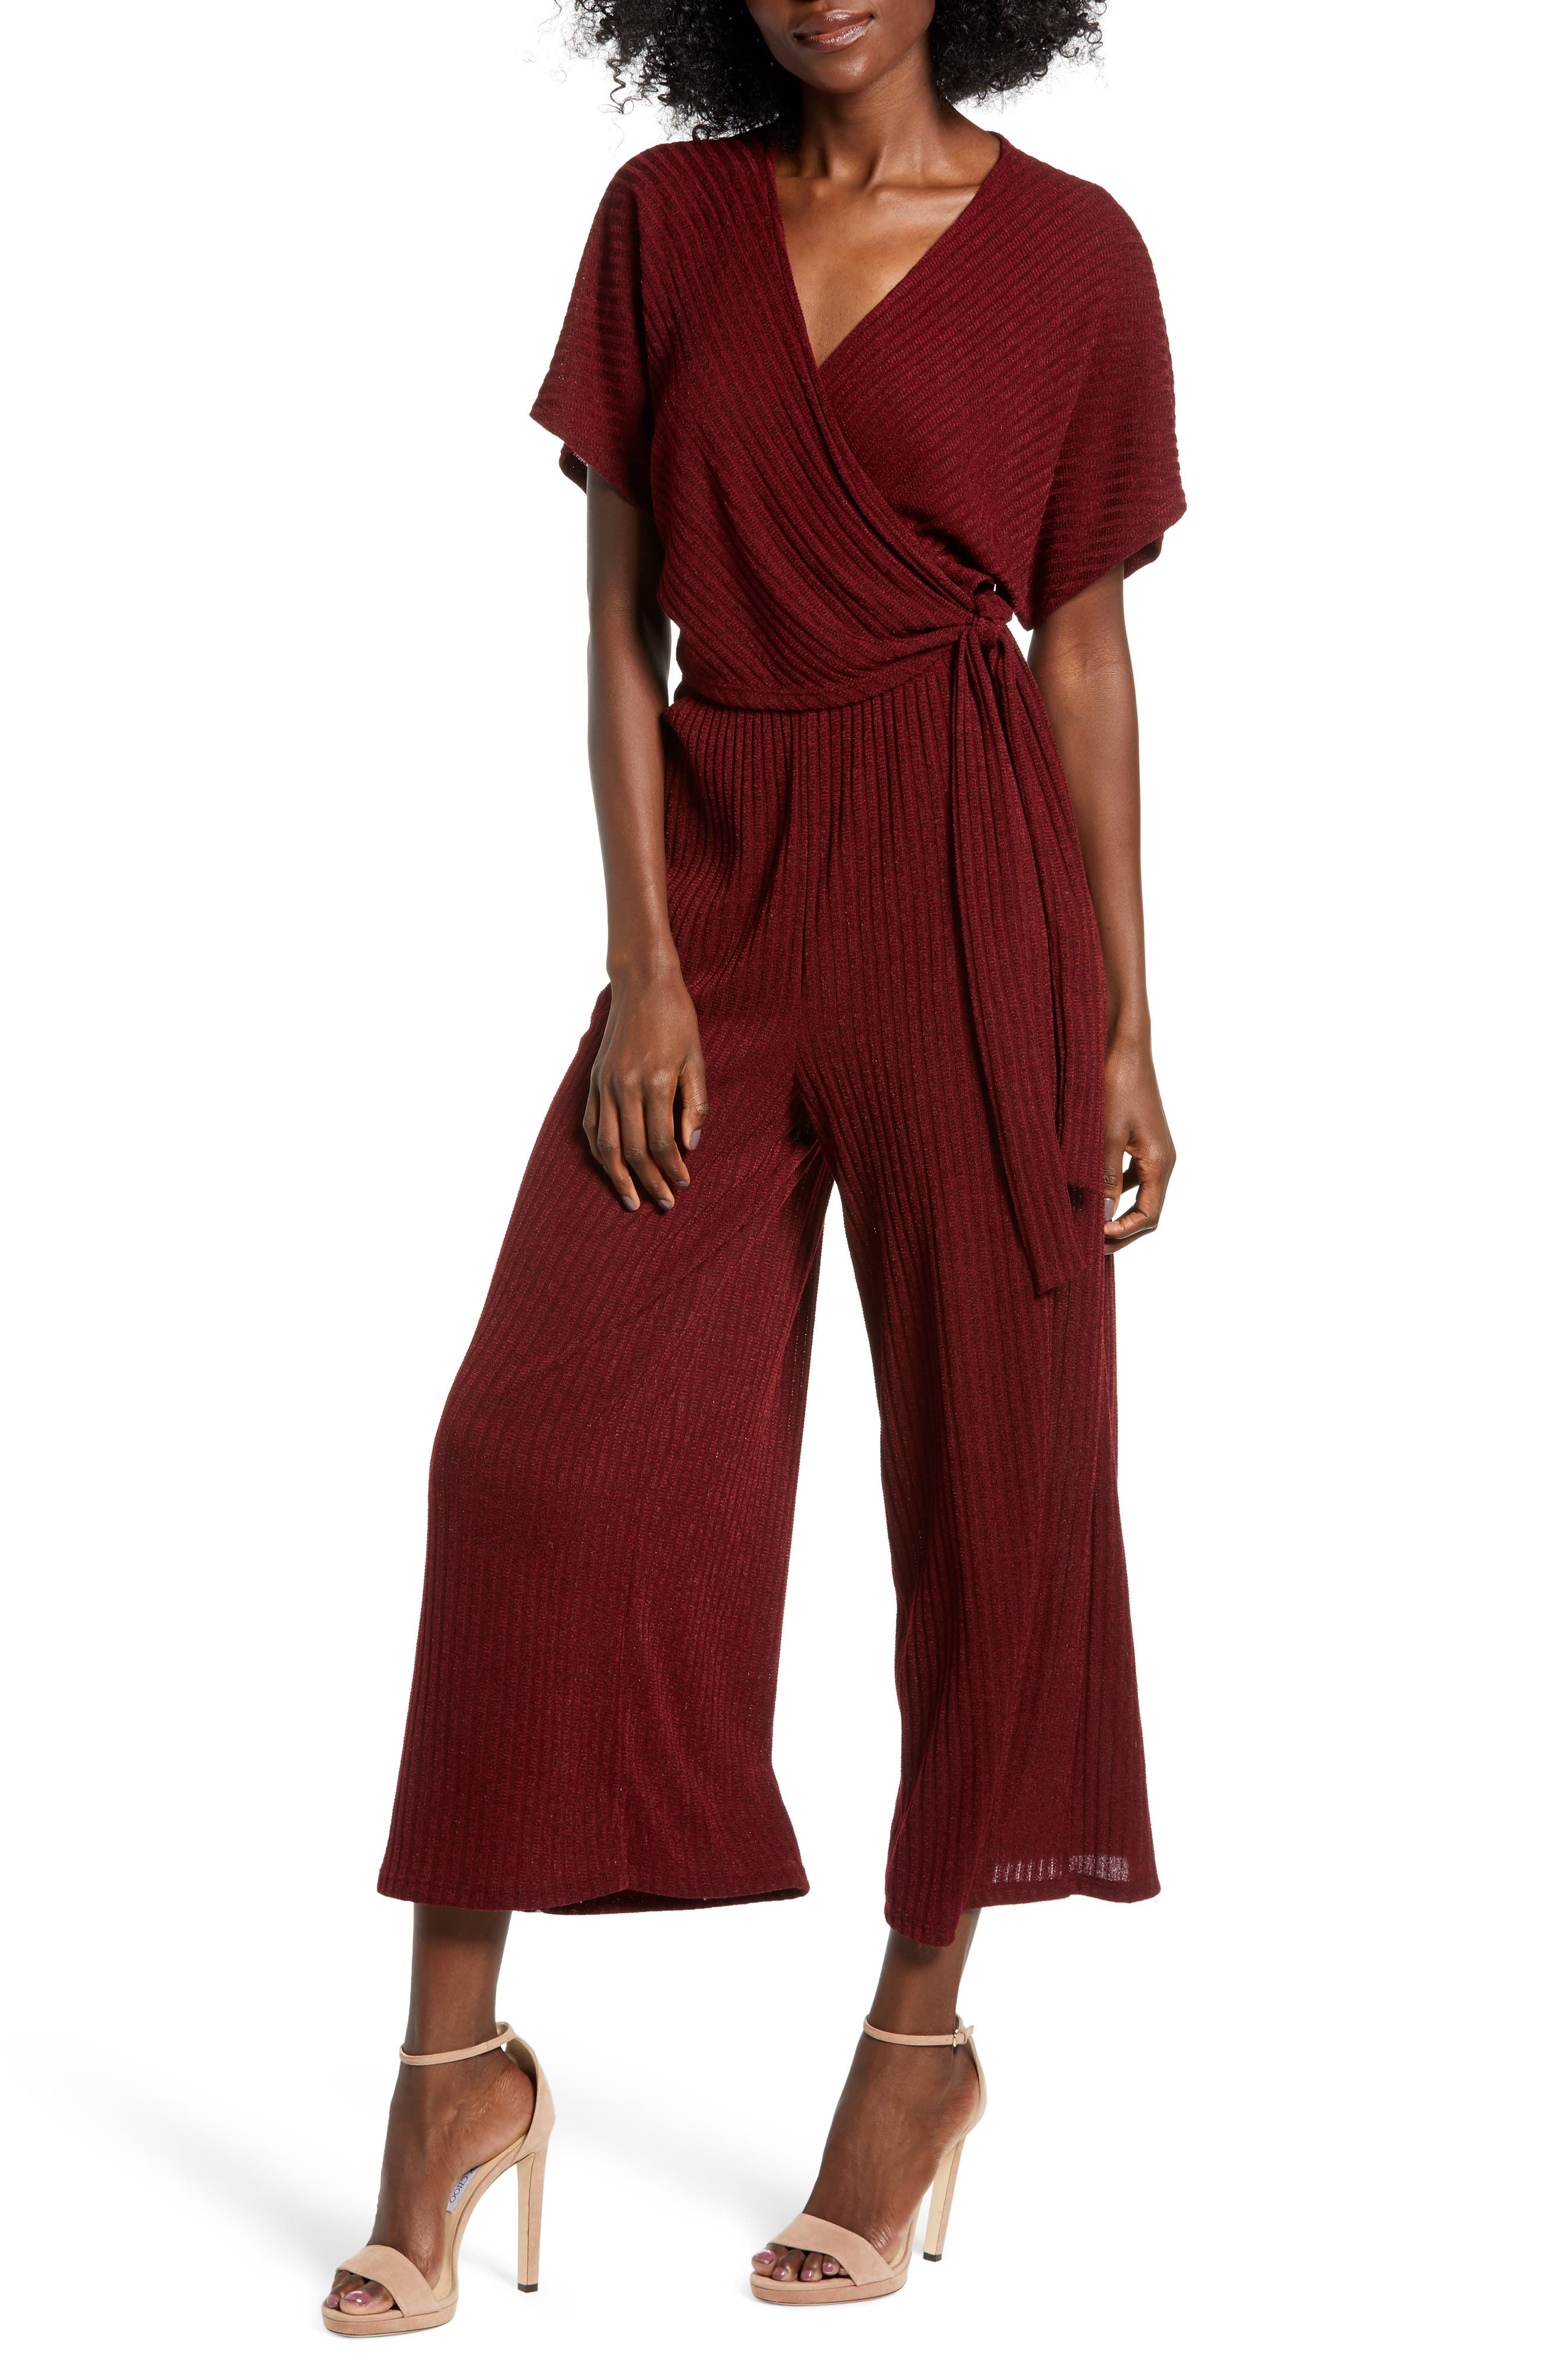 70s Jumpsuit | Disco Jumpsuits – Sequin, Striped, Gold, White, Black Womens All In Favor Wide Leg Wrap Front Jumpsuit Size Small - Burgundy $59.00 AT vintagedancer.com